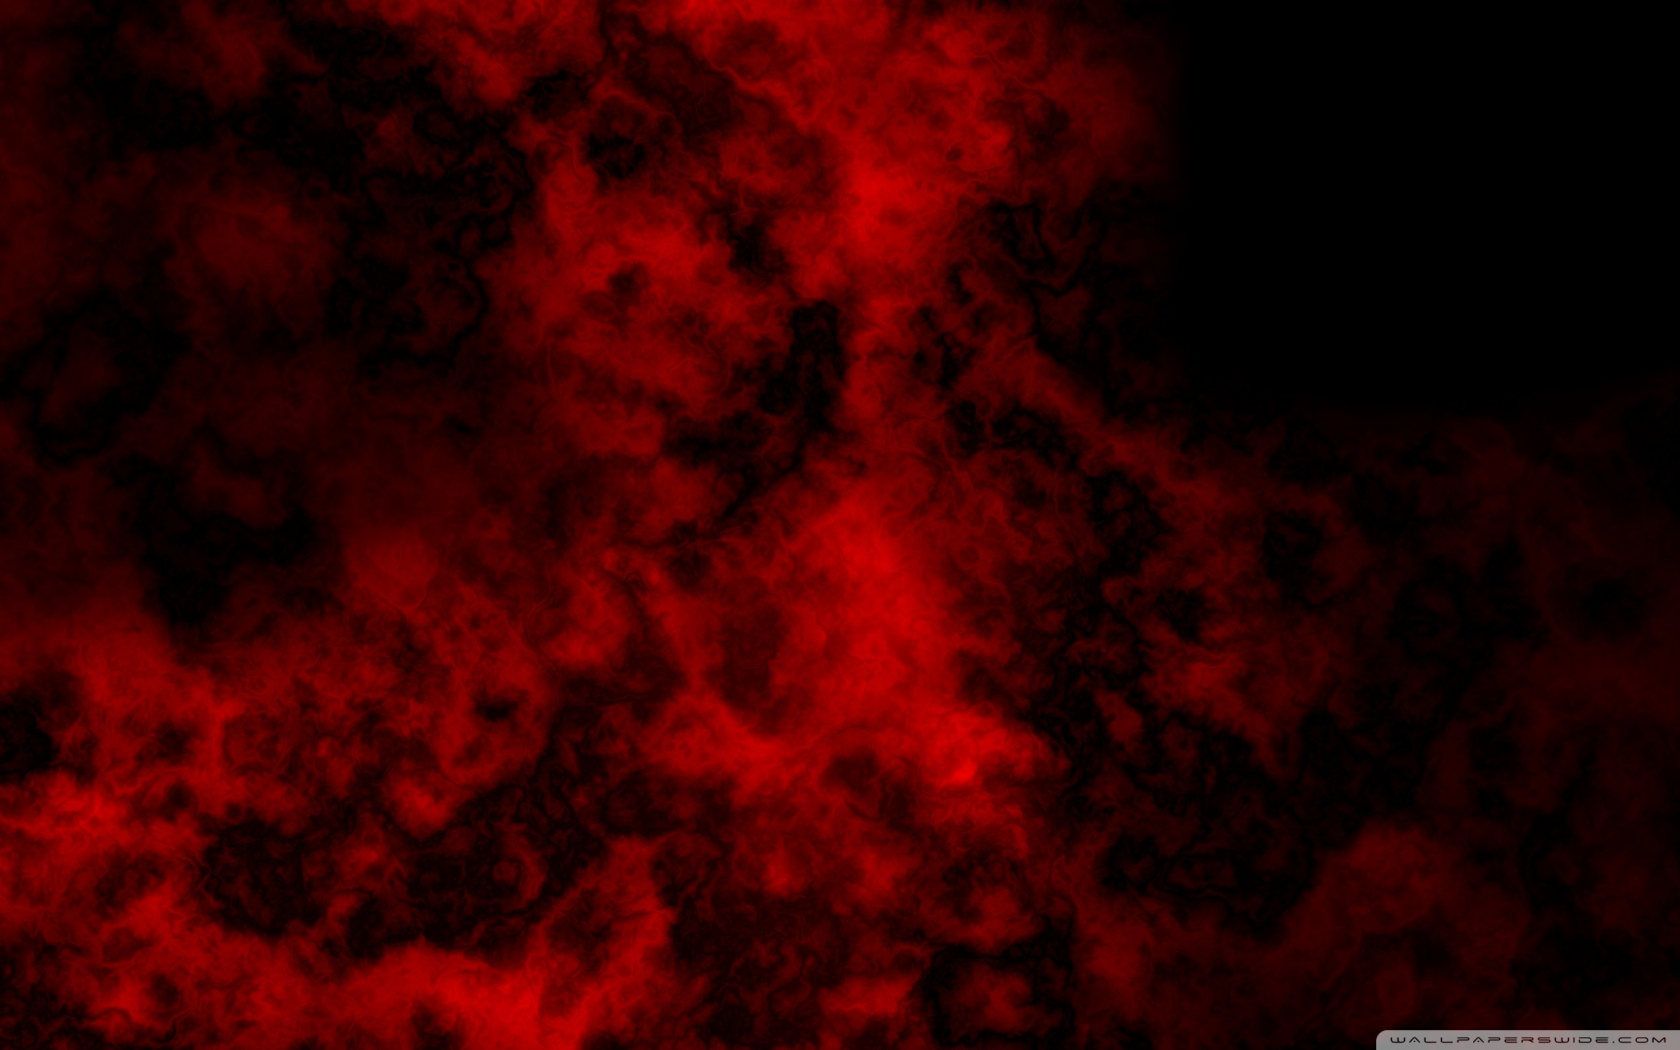 Dark Blood Wallpaper Blood Clouds 4k Hd Desktop Wallpaper For 4k Ultra Hd Tv Wide